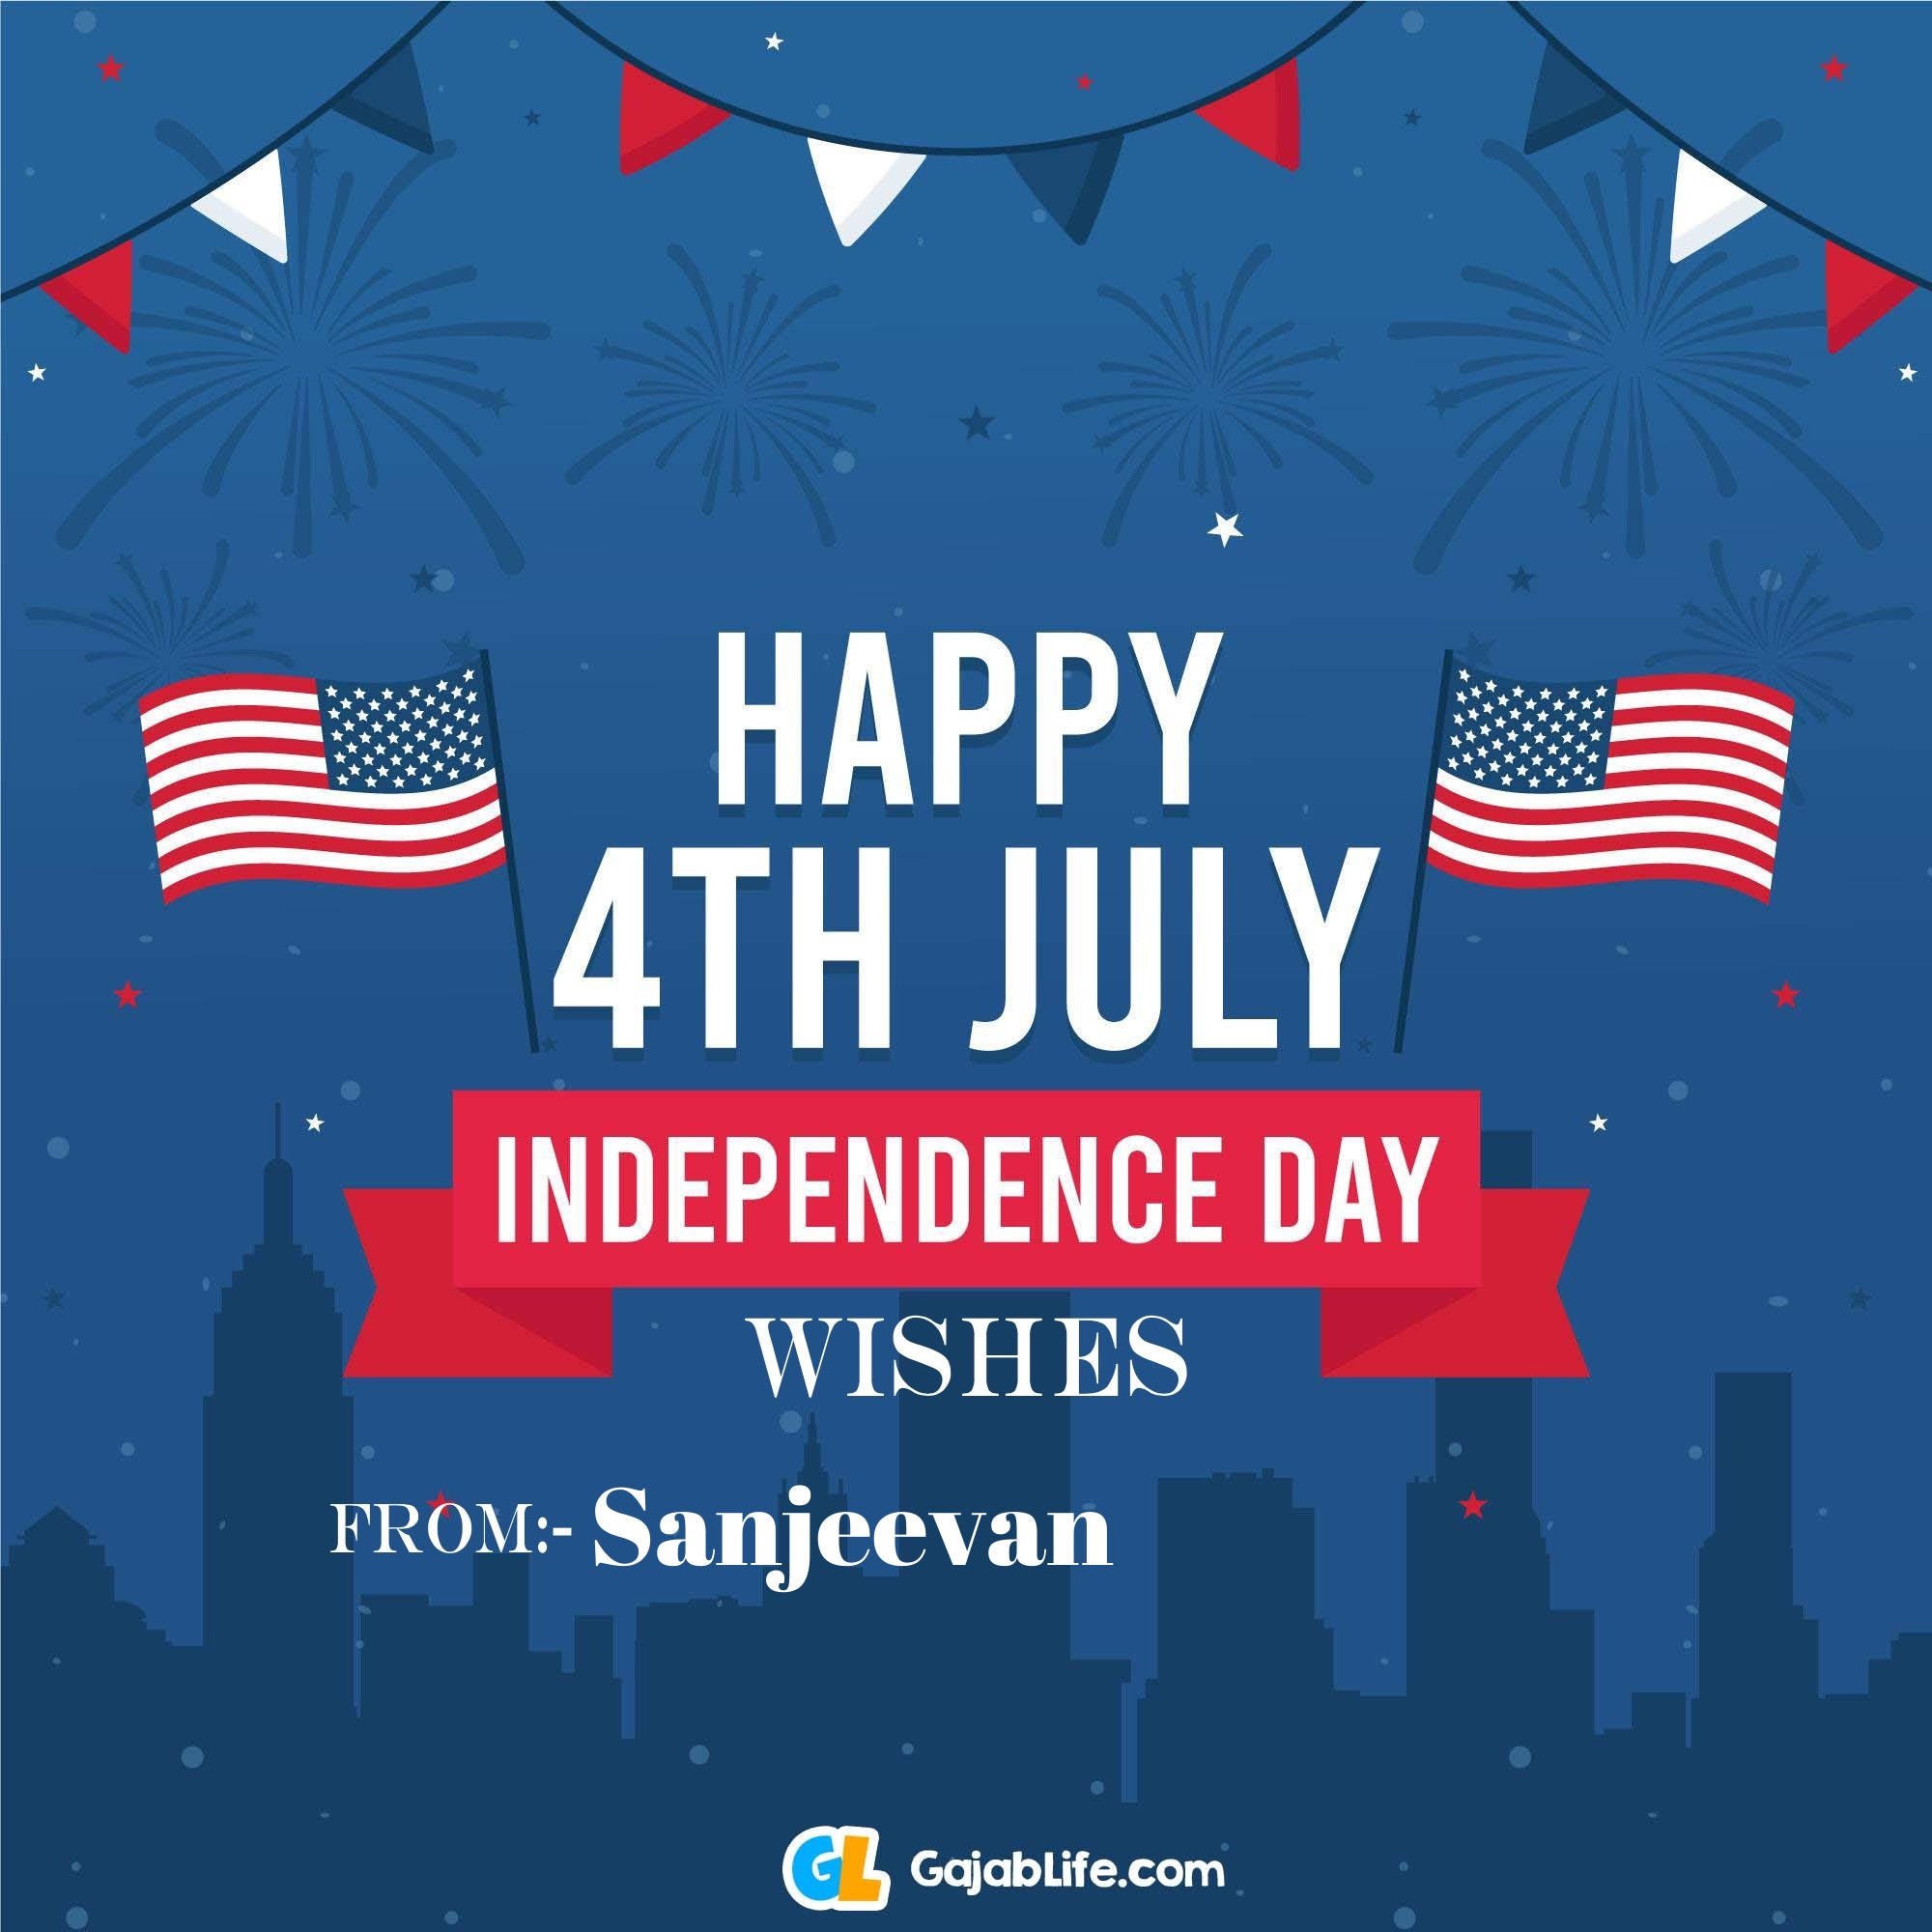 Sanjeevan happy independence day united states of america images